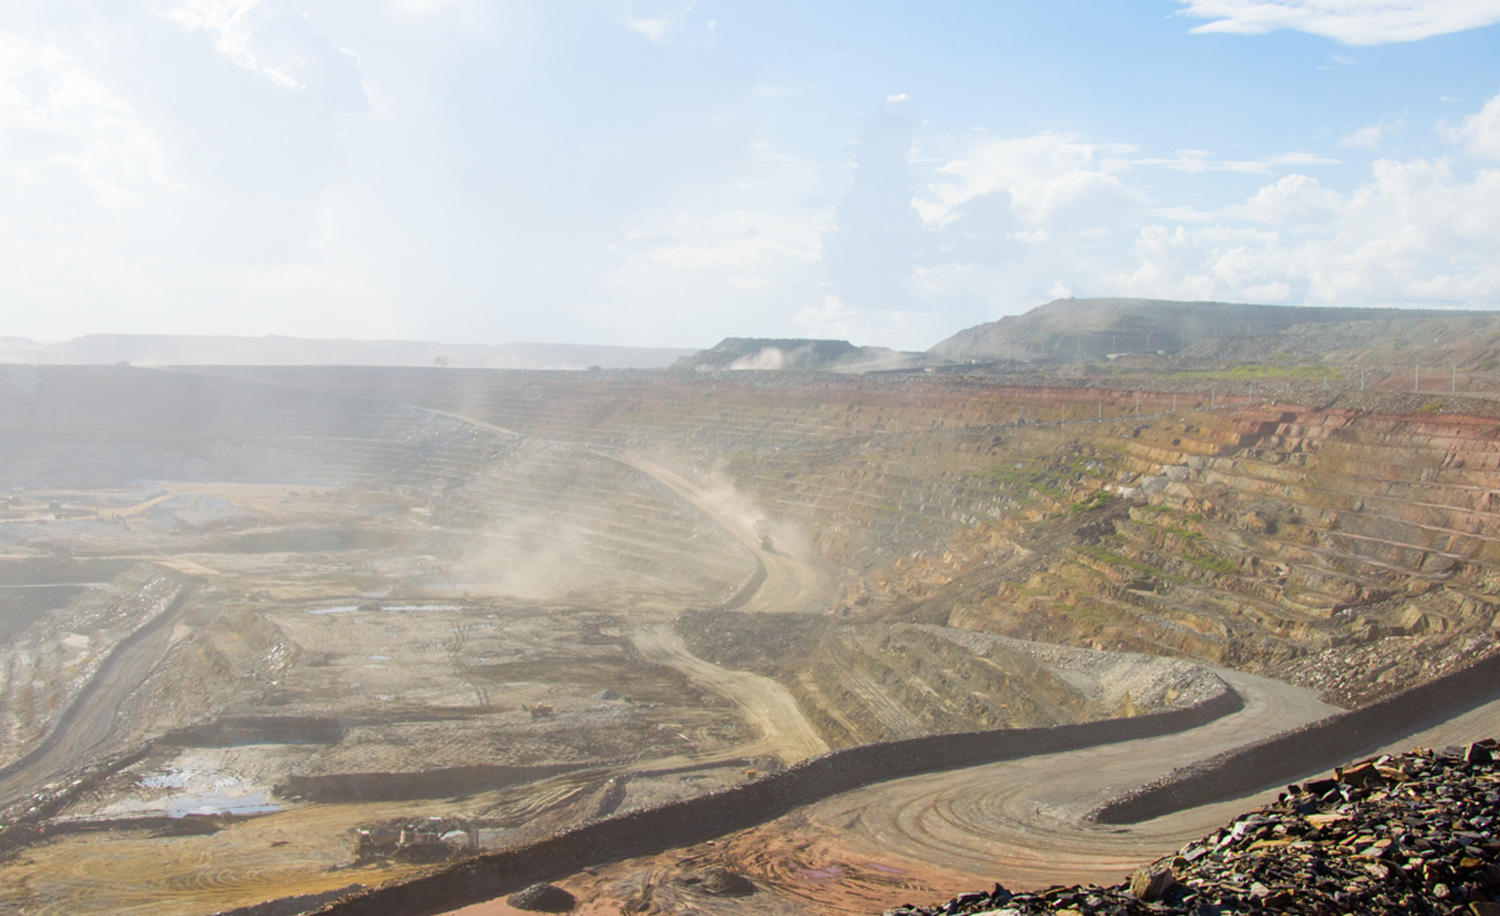 Rio completes initial work at Zambia copper project